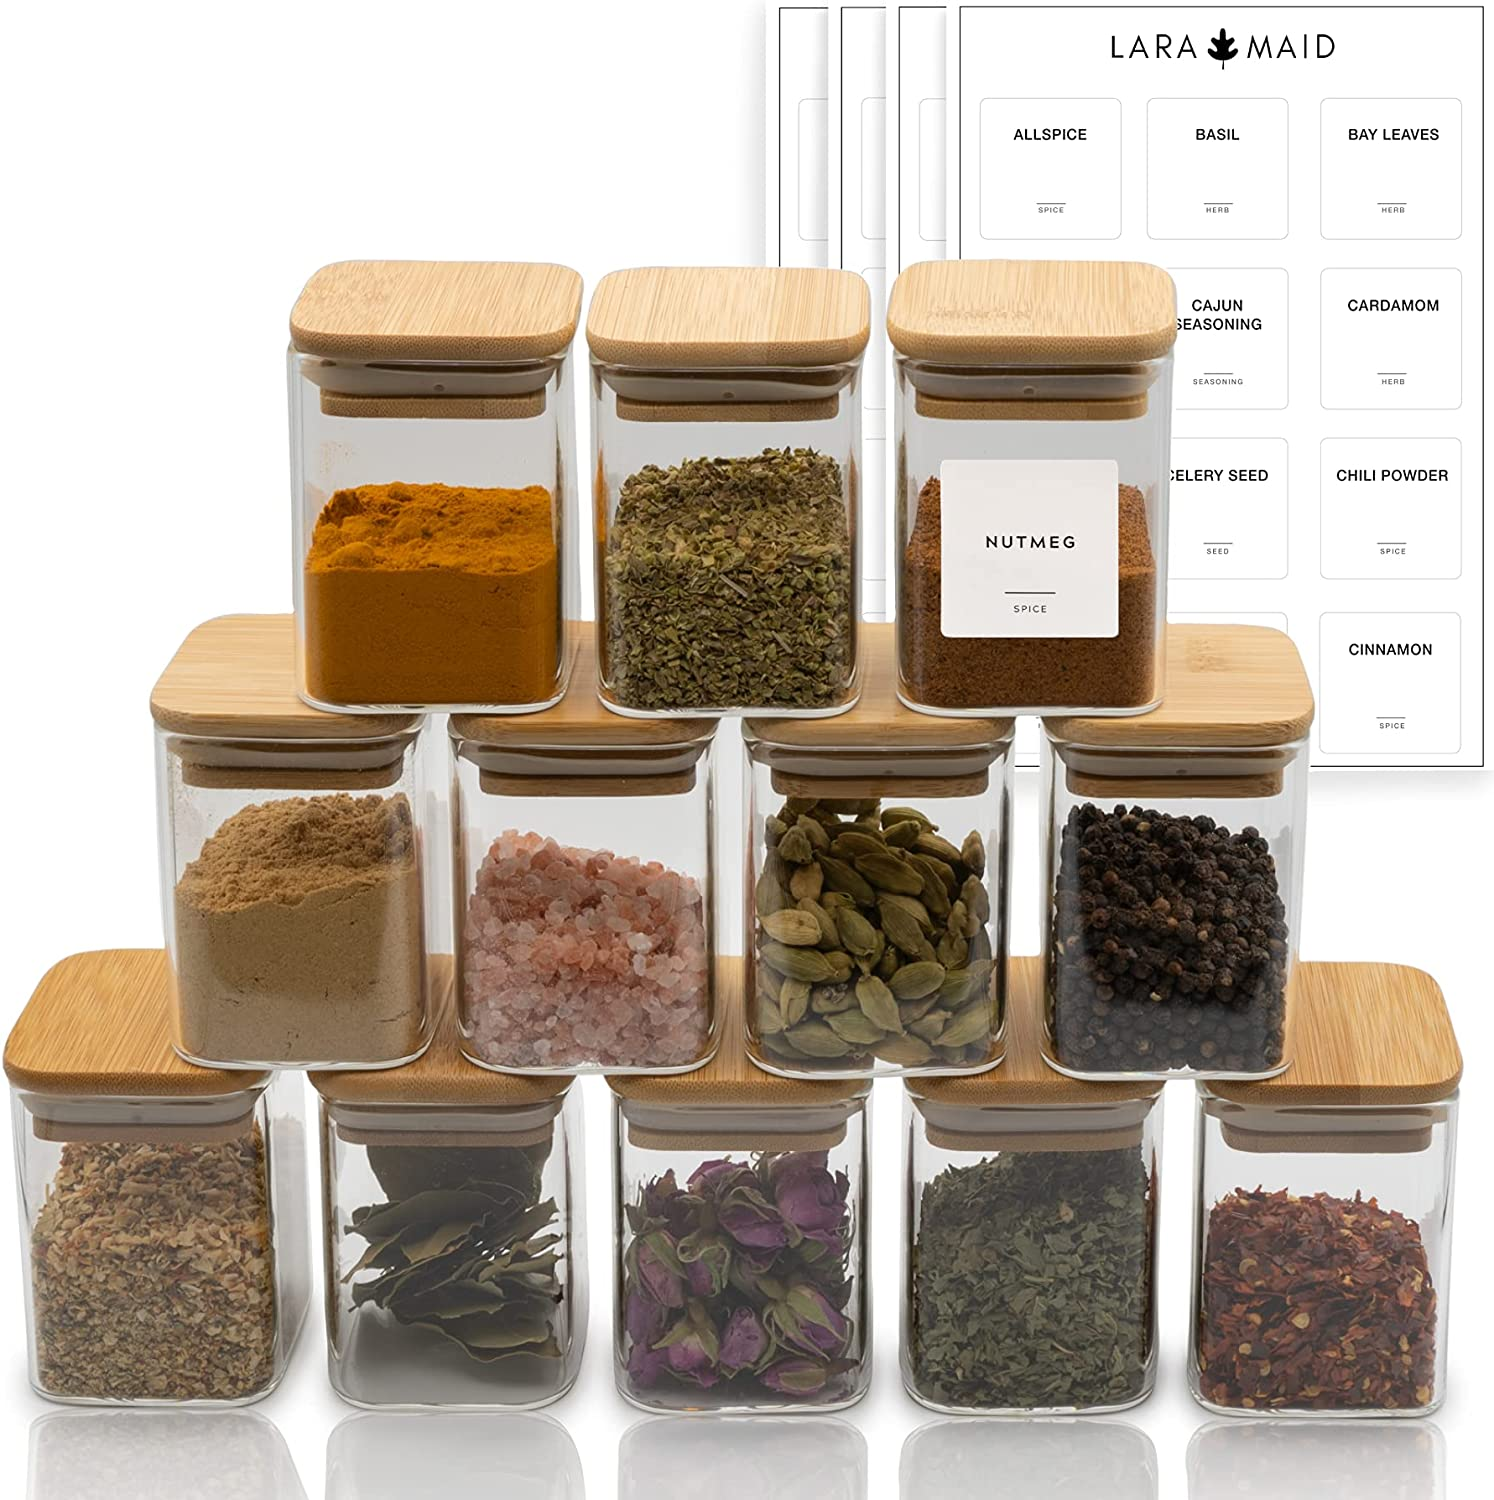 Laramaid Glass Jars Set, Square Spice Jars with Bamboo Lids and Customized Labels, 7oz 12Packs Small Food Storage Containers for Home Kitchen, Spice, Herbs, Seasoning, Seed, Tea, Sugar, Salt